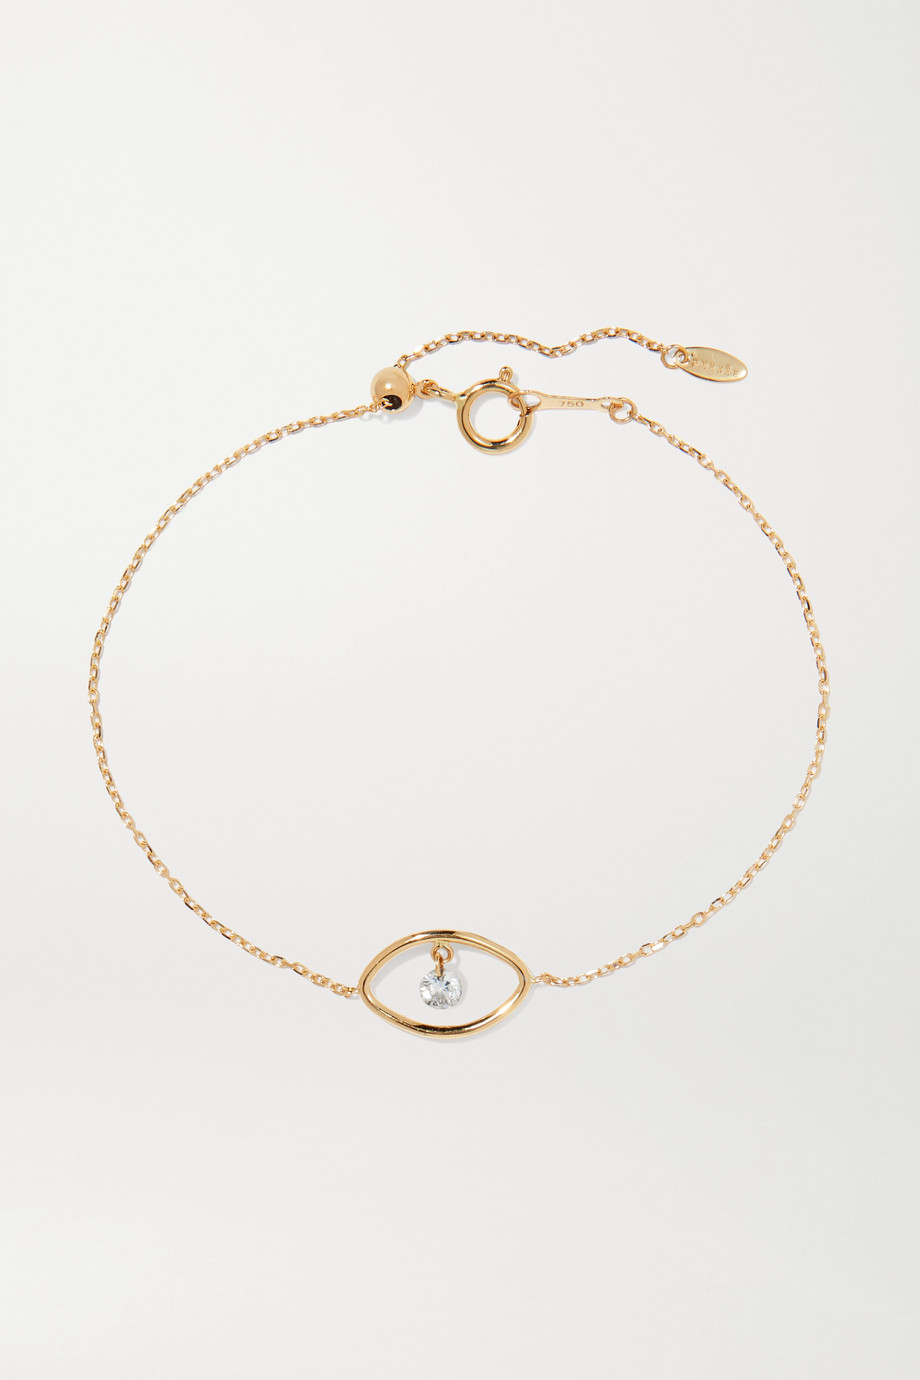 Persée Eye gold diamond bracelet